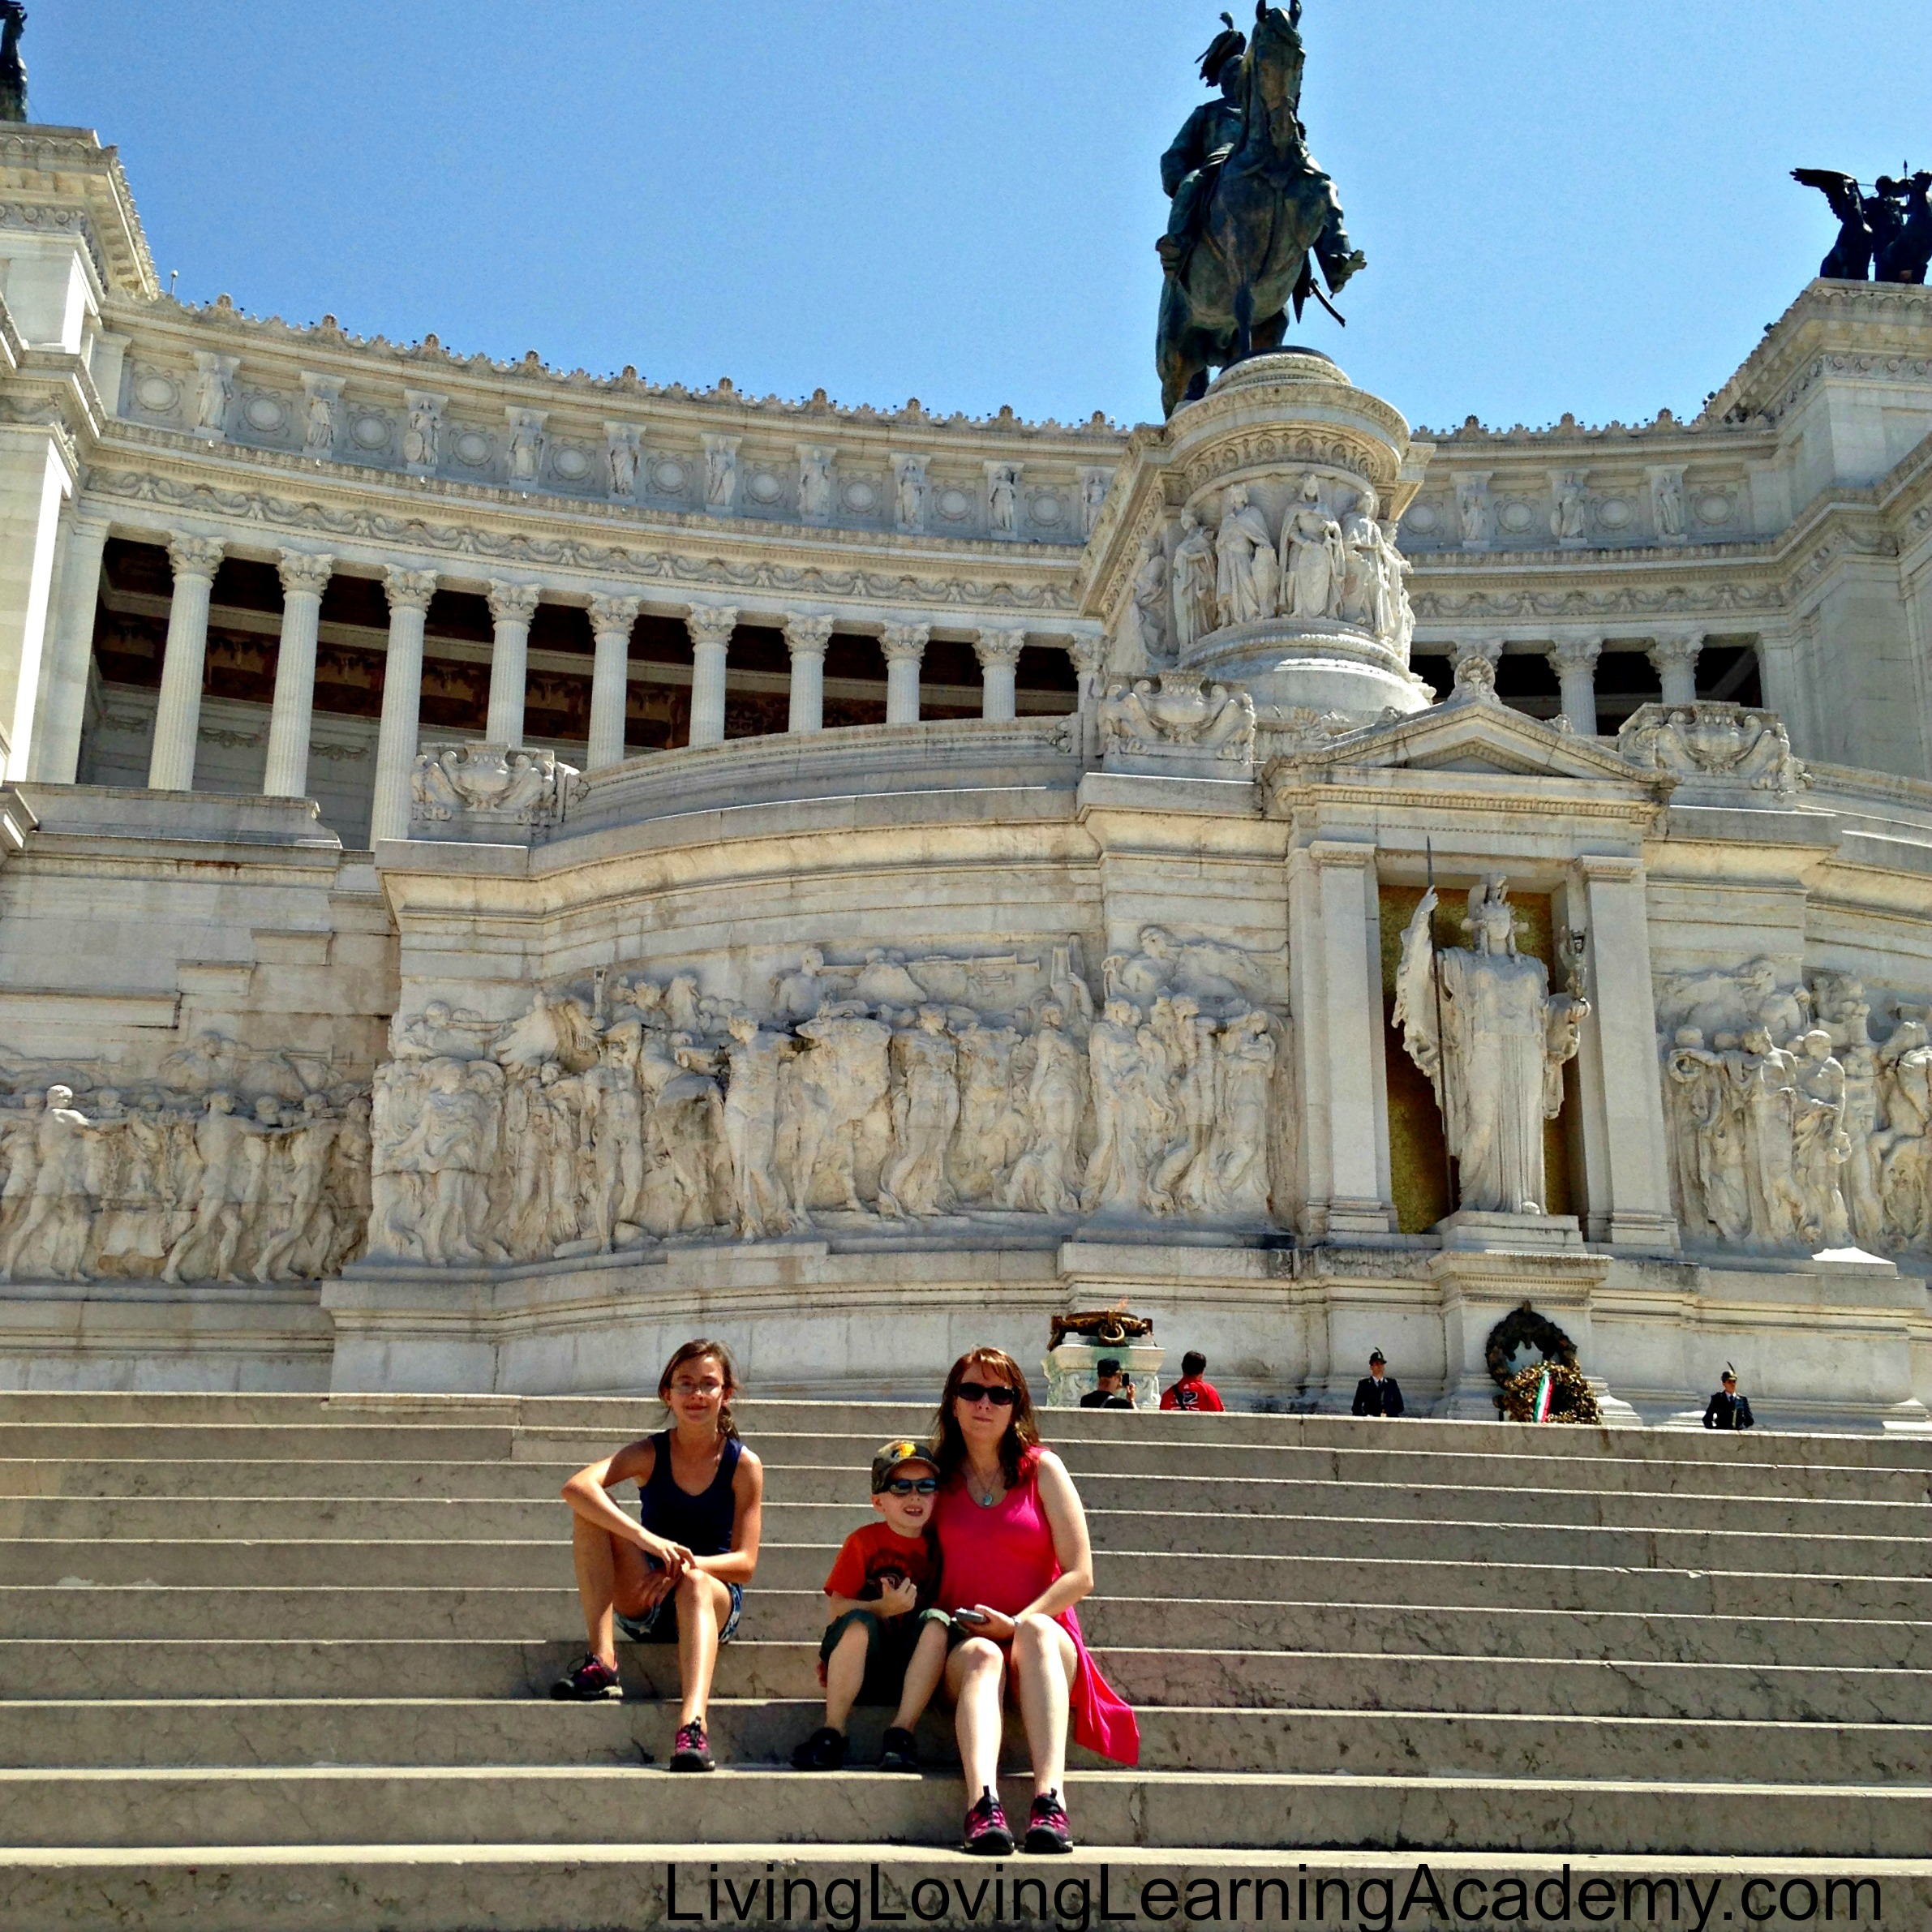 Roman Vacations: Roman Holiday: A Family Vacation To Rome (Part 2)